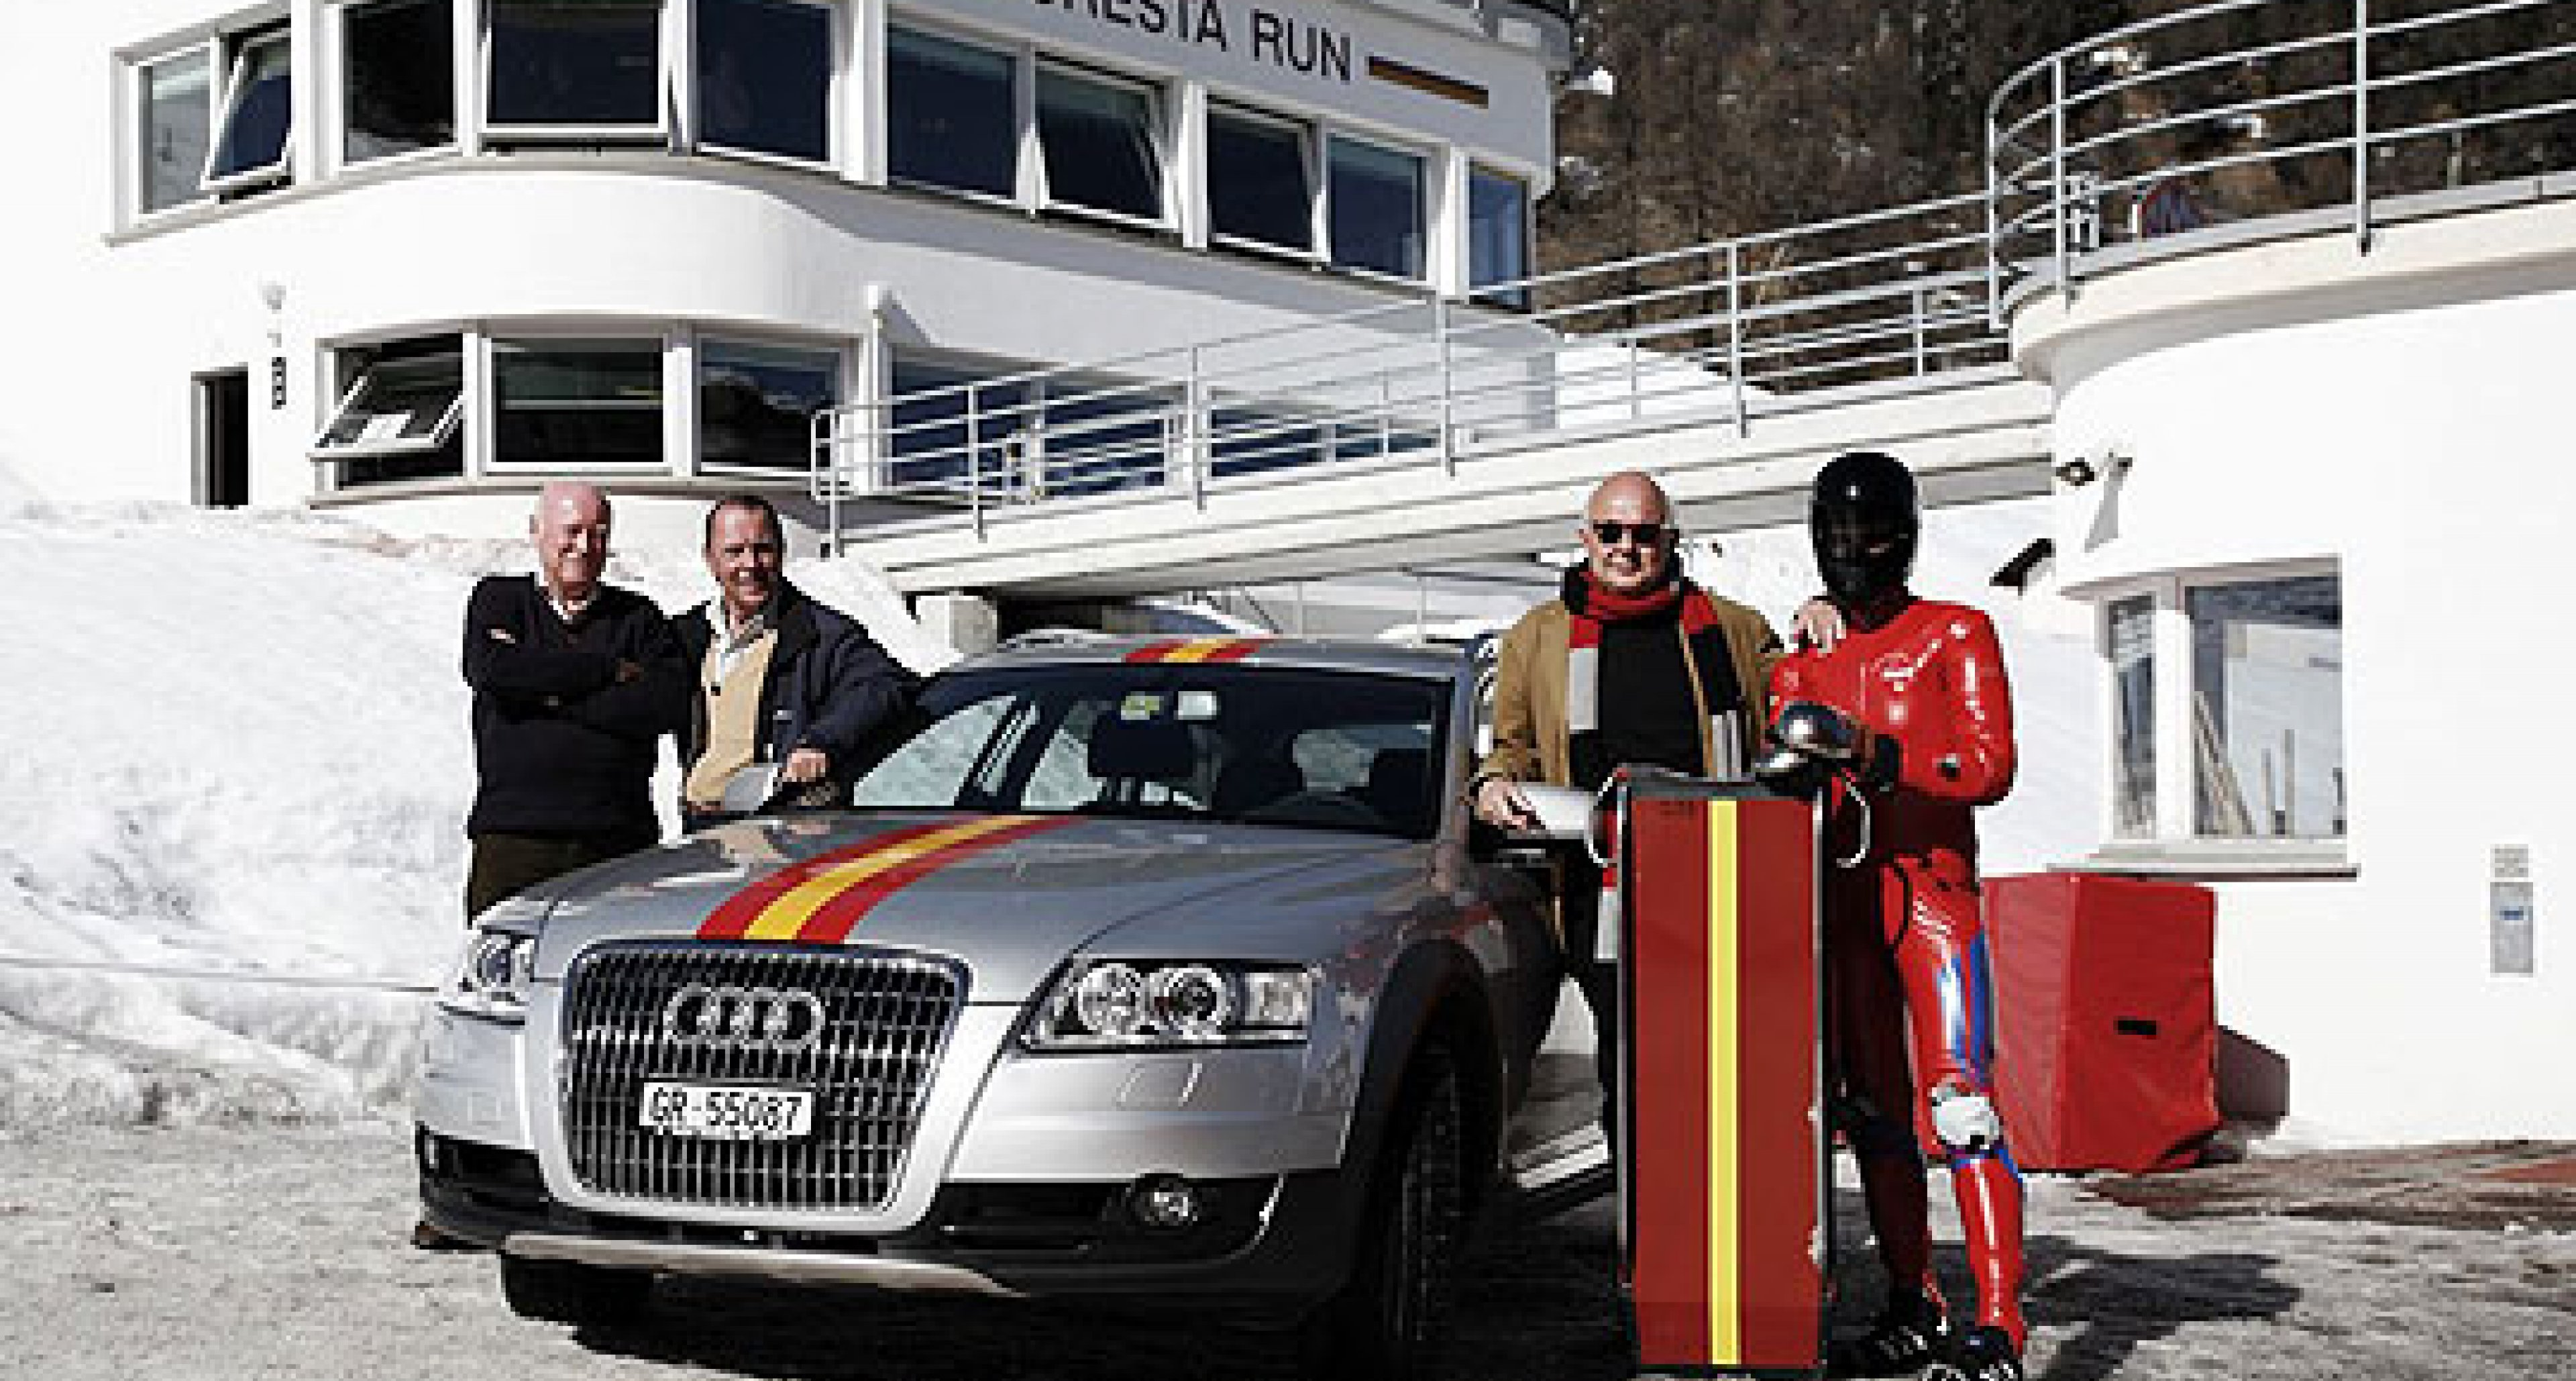 Audi A6 allroad – Safety Car for the St Moritz Tobogganing Club